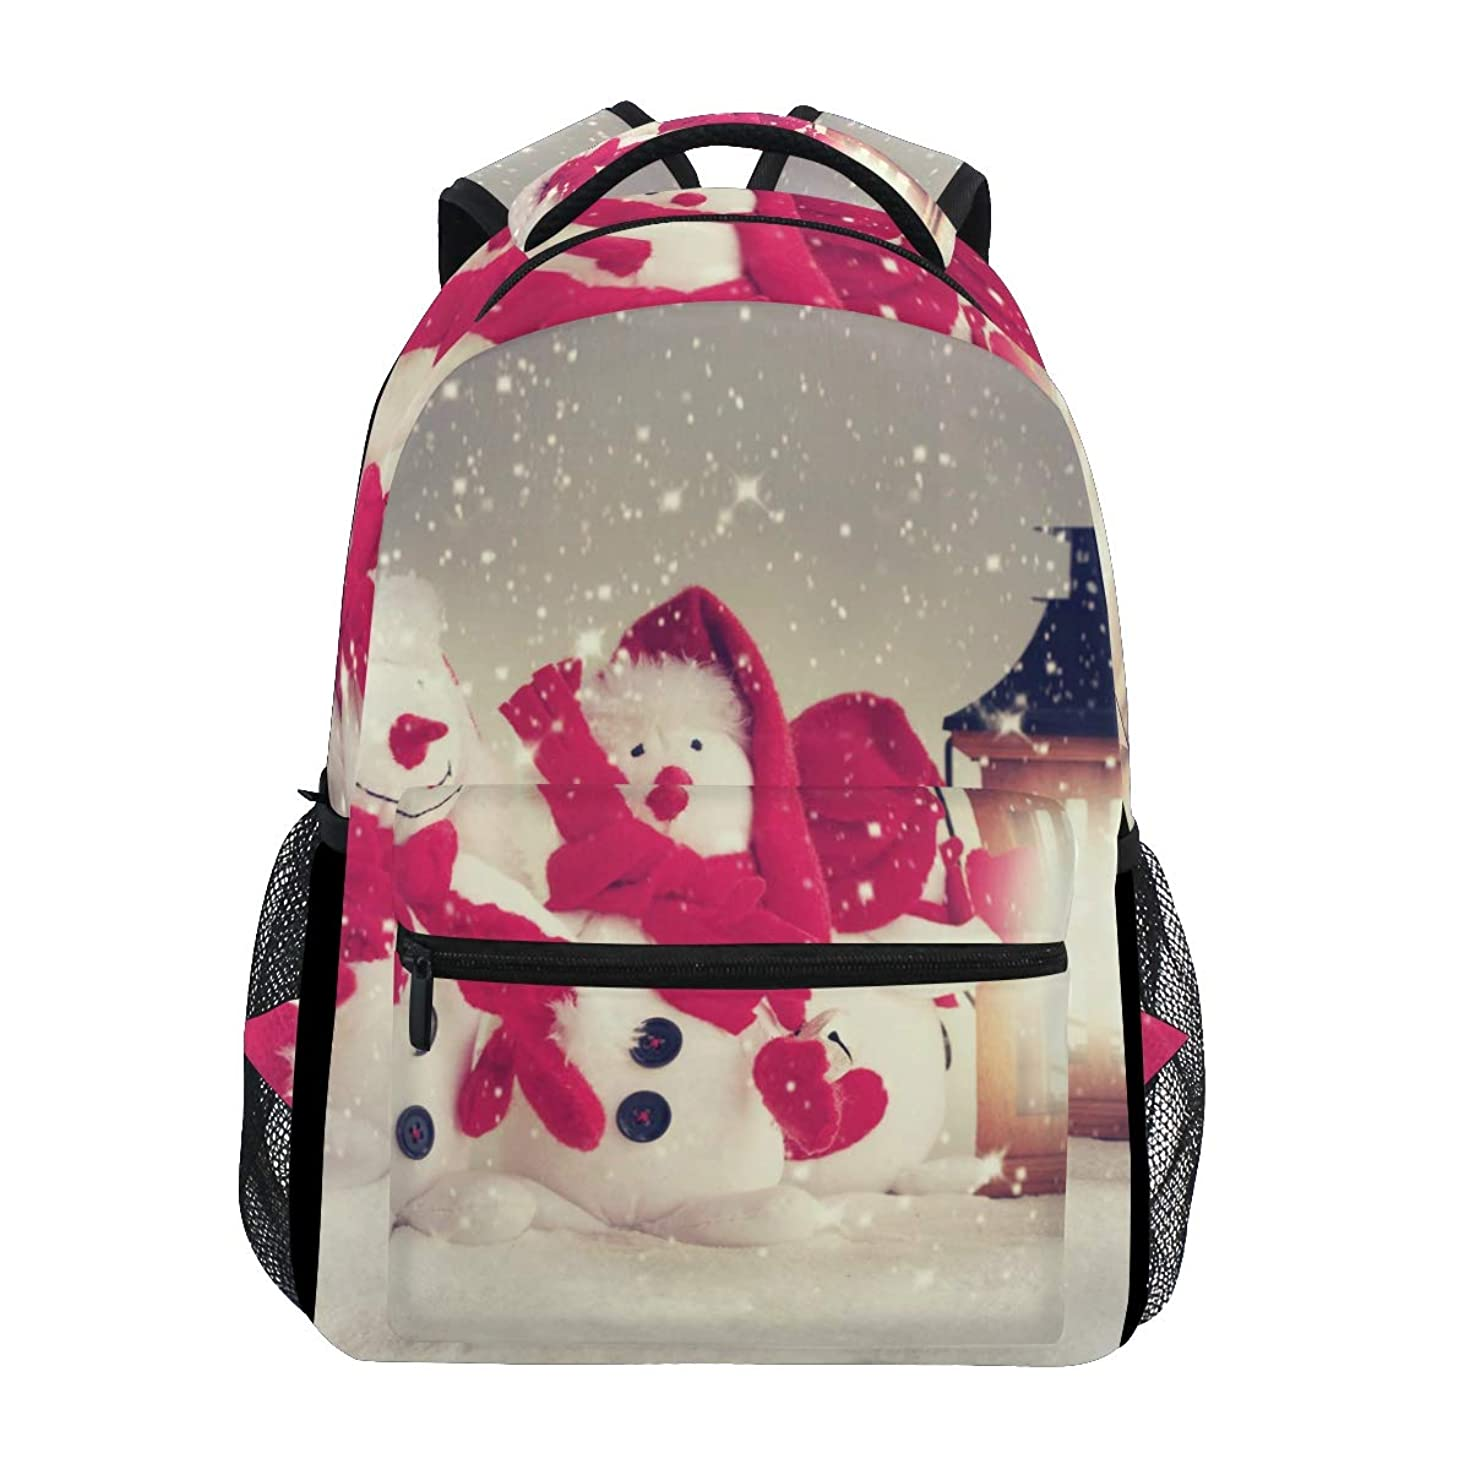 Two Snowmen Sitting By The Lamp Backpack Travel Resistant School Book Bags College Laptop Daypack for Women Girls Boys